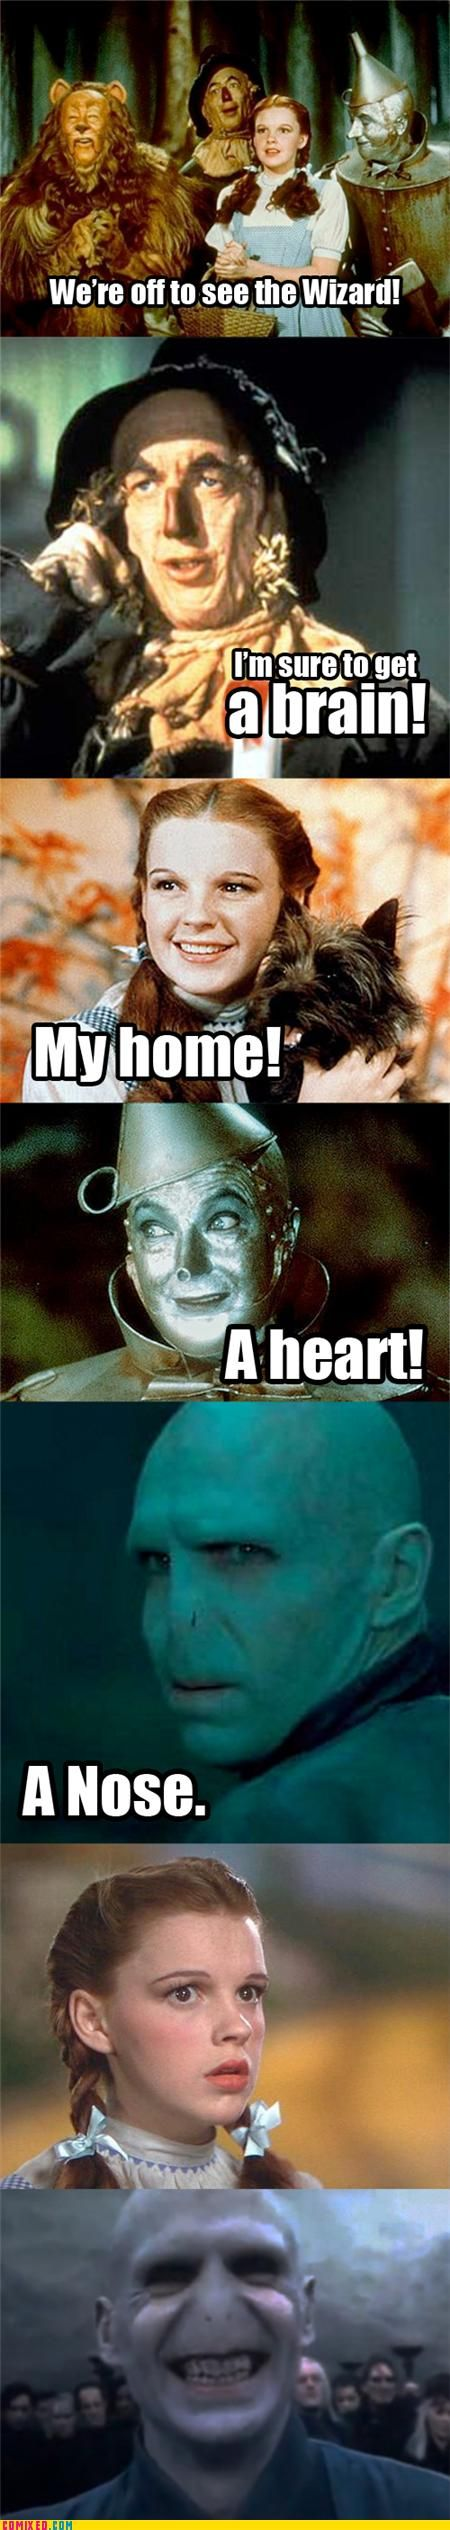 :)Voldemort, Harry Potter Jokes, Laugh, Harry Potter Memes, Harrypotter, Things, Wizards Of Oz, So Funny, Nose